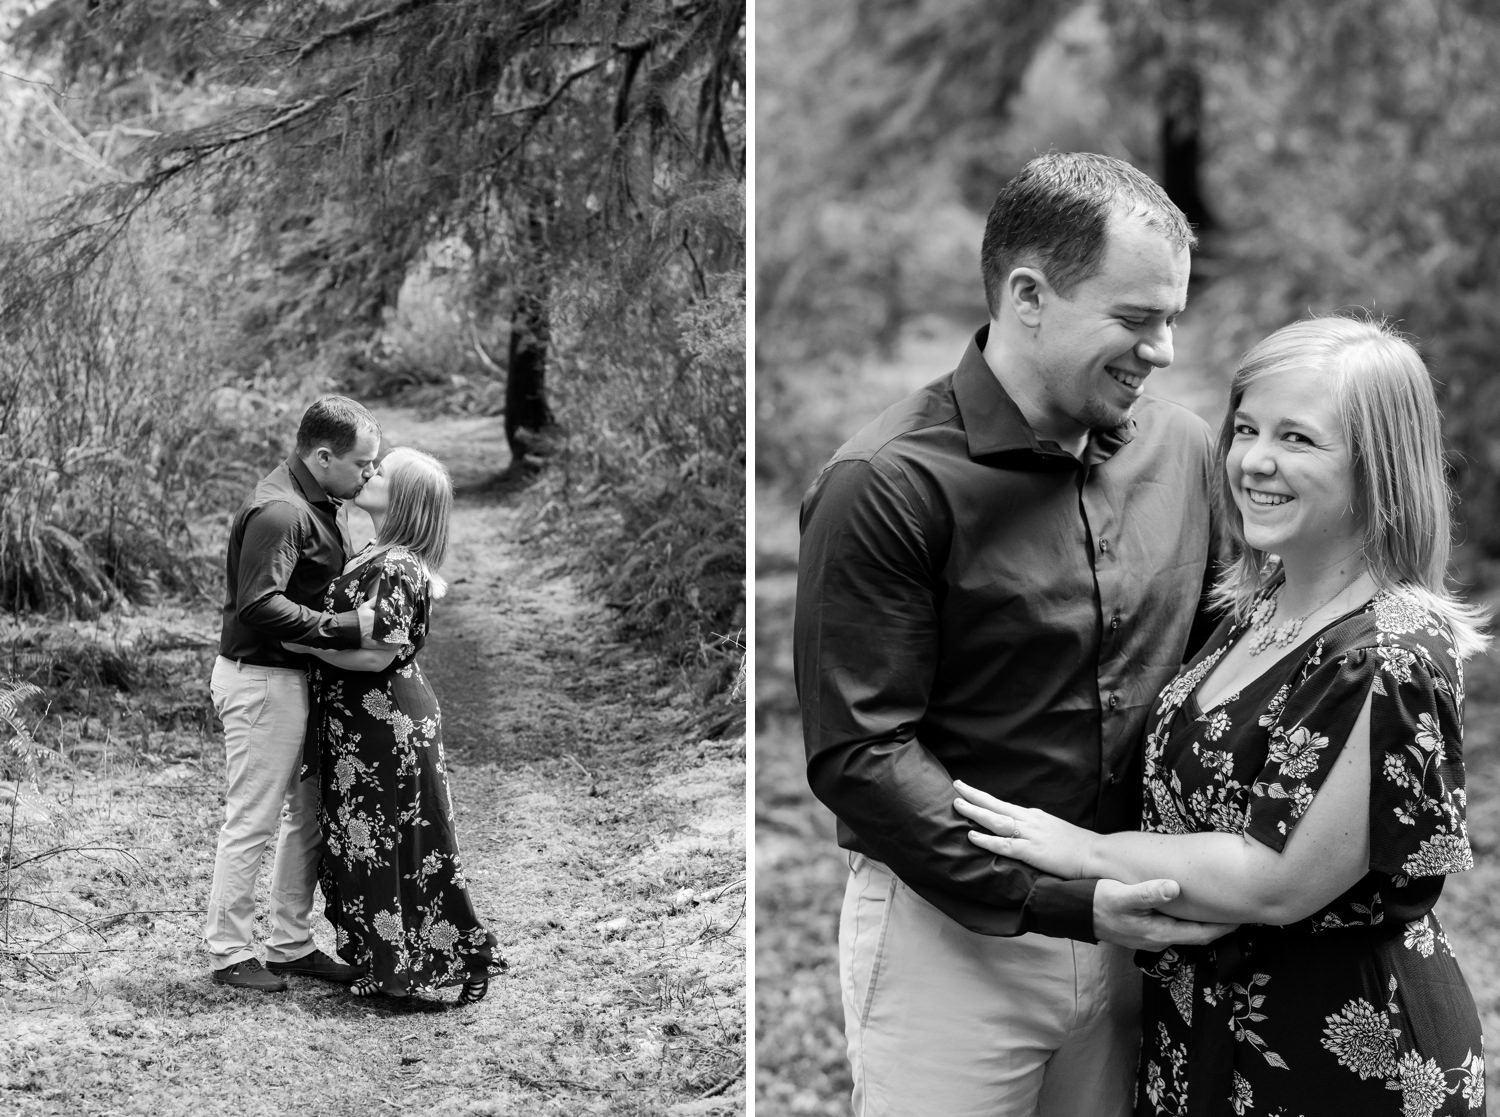 oregon-coast-engagement-pictures-002 Oregon Coast Engagement Pictures | North Fork Smith River Adventure Engagement | Sweet Creek Falls | Kaylee & Wyatt